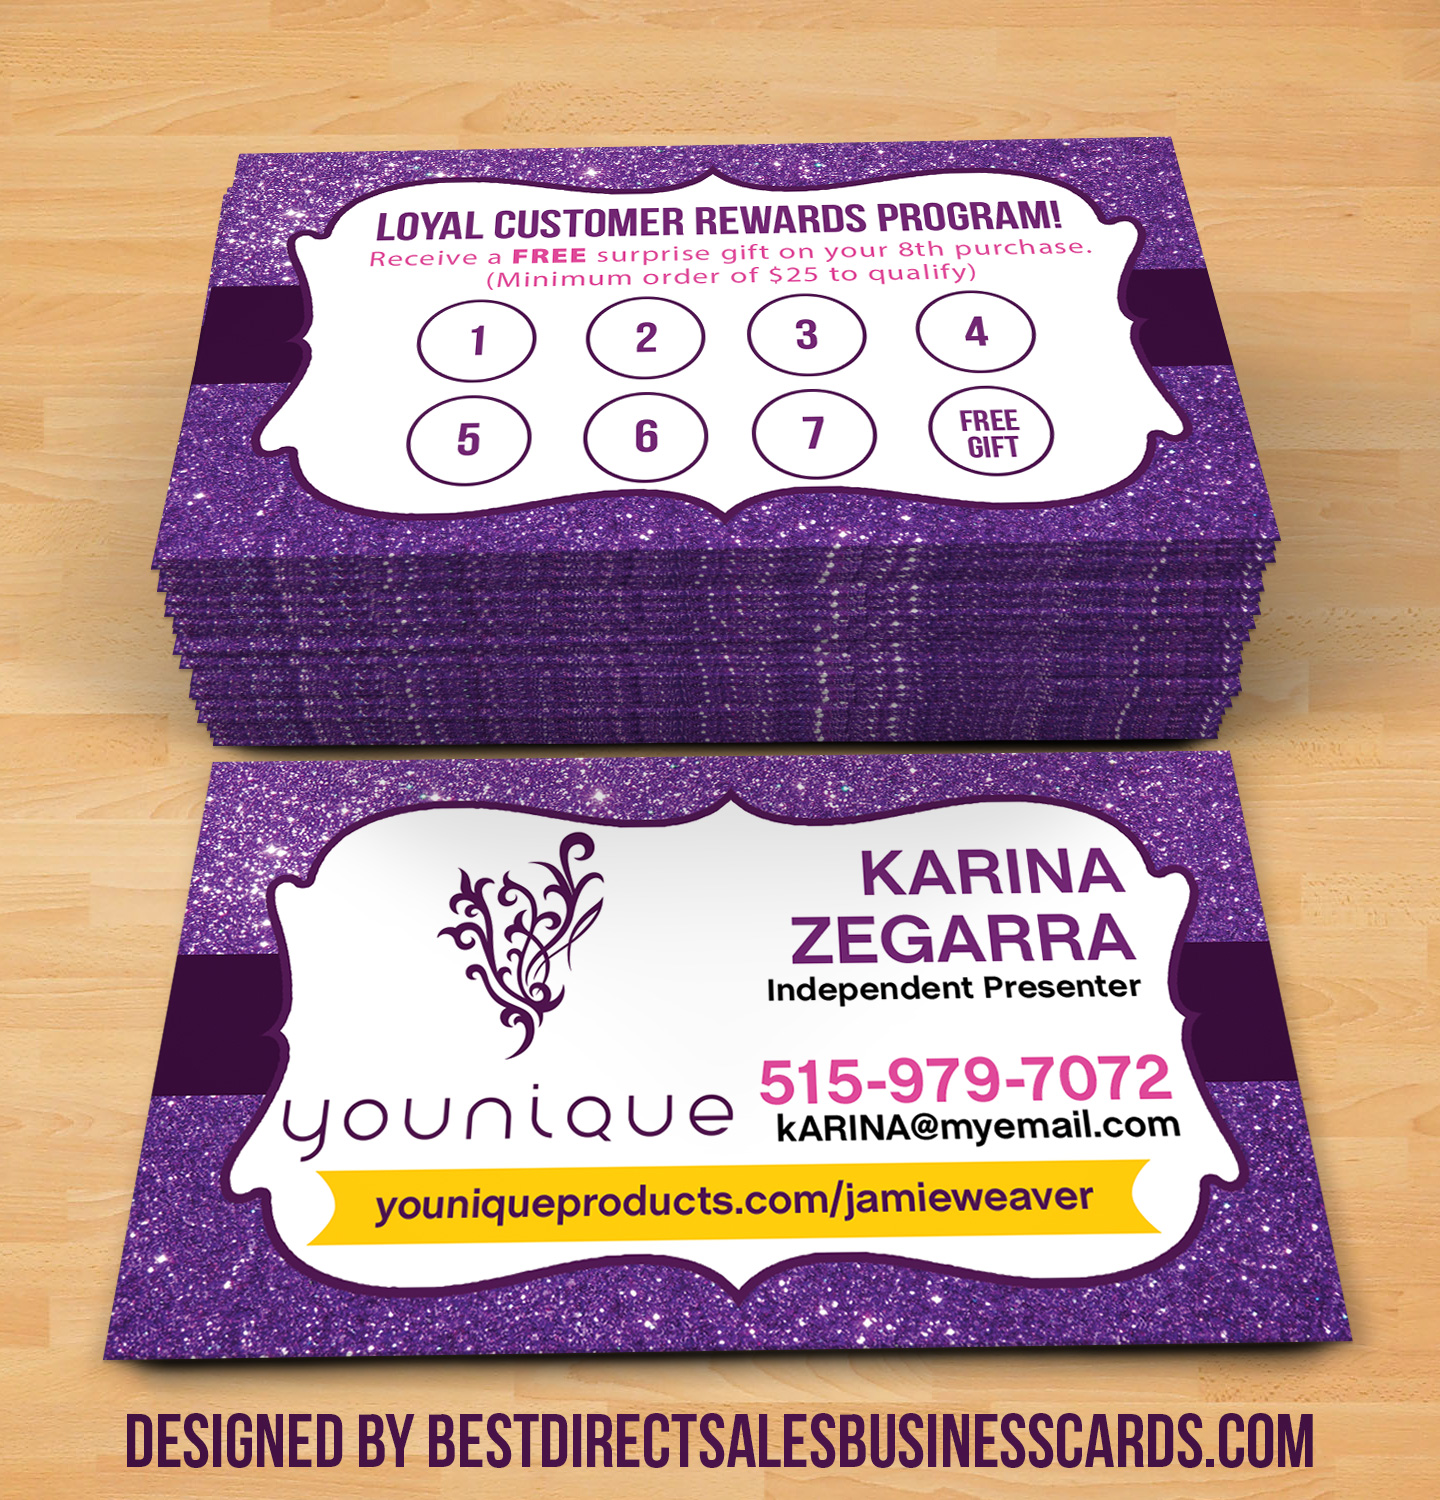 Younique Business Cards - 6 · KZ Creative Services · Online Store ...